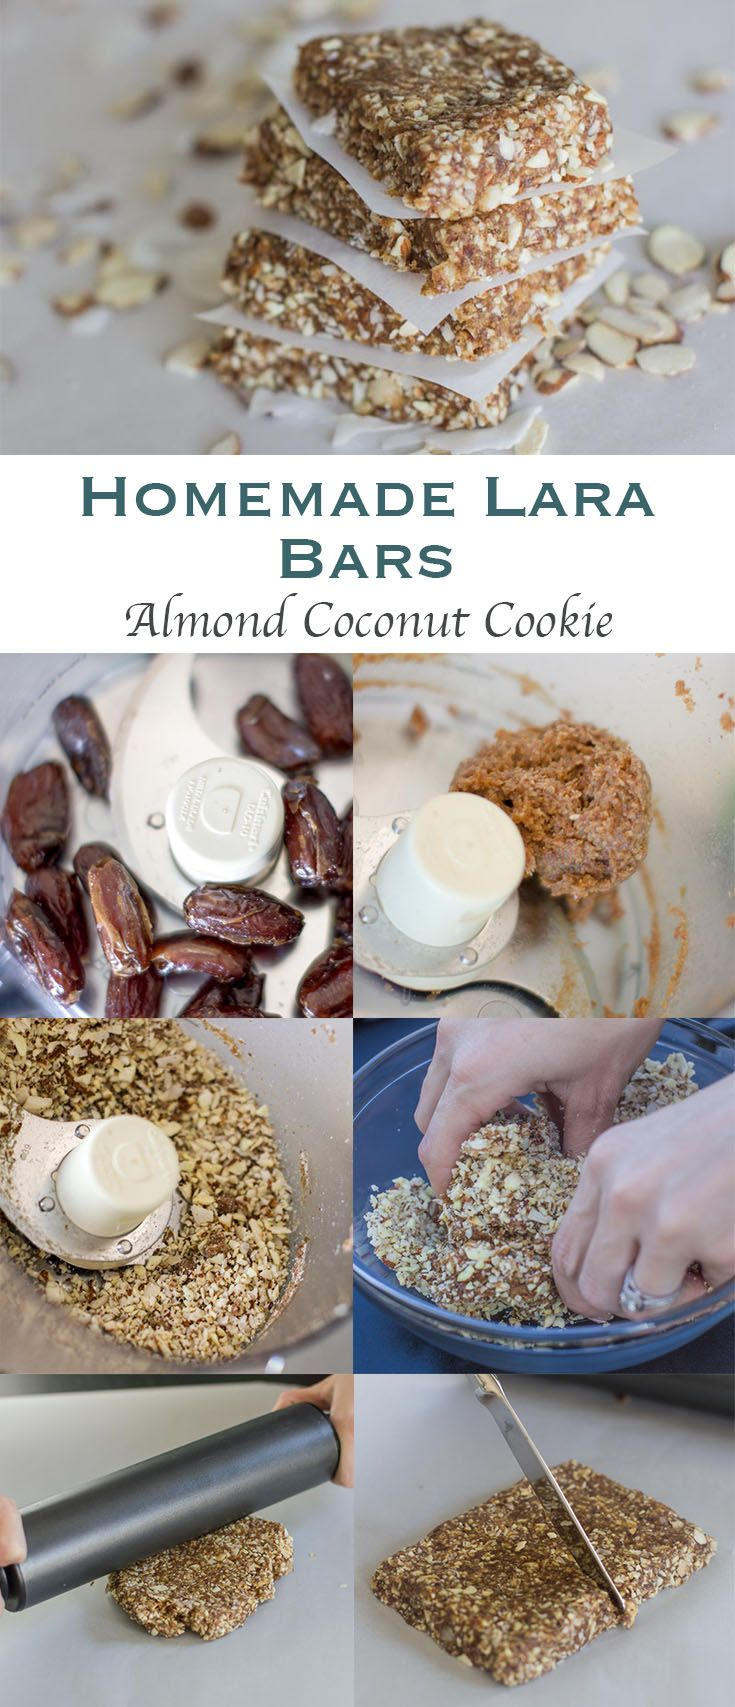 Almond Coconut Cookie Lara Bars made with clean eating ingredients for a healthy snack